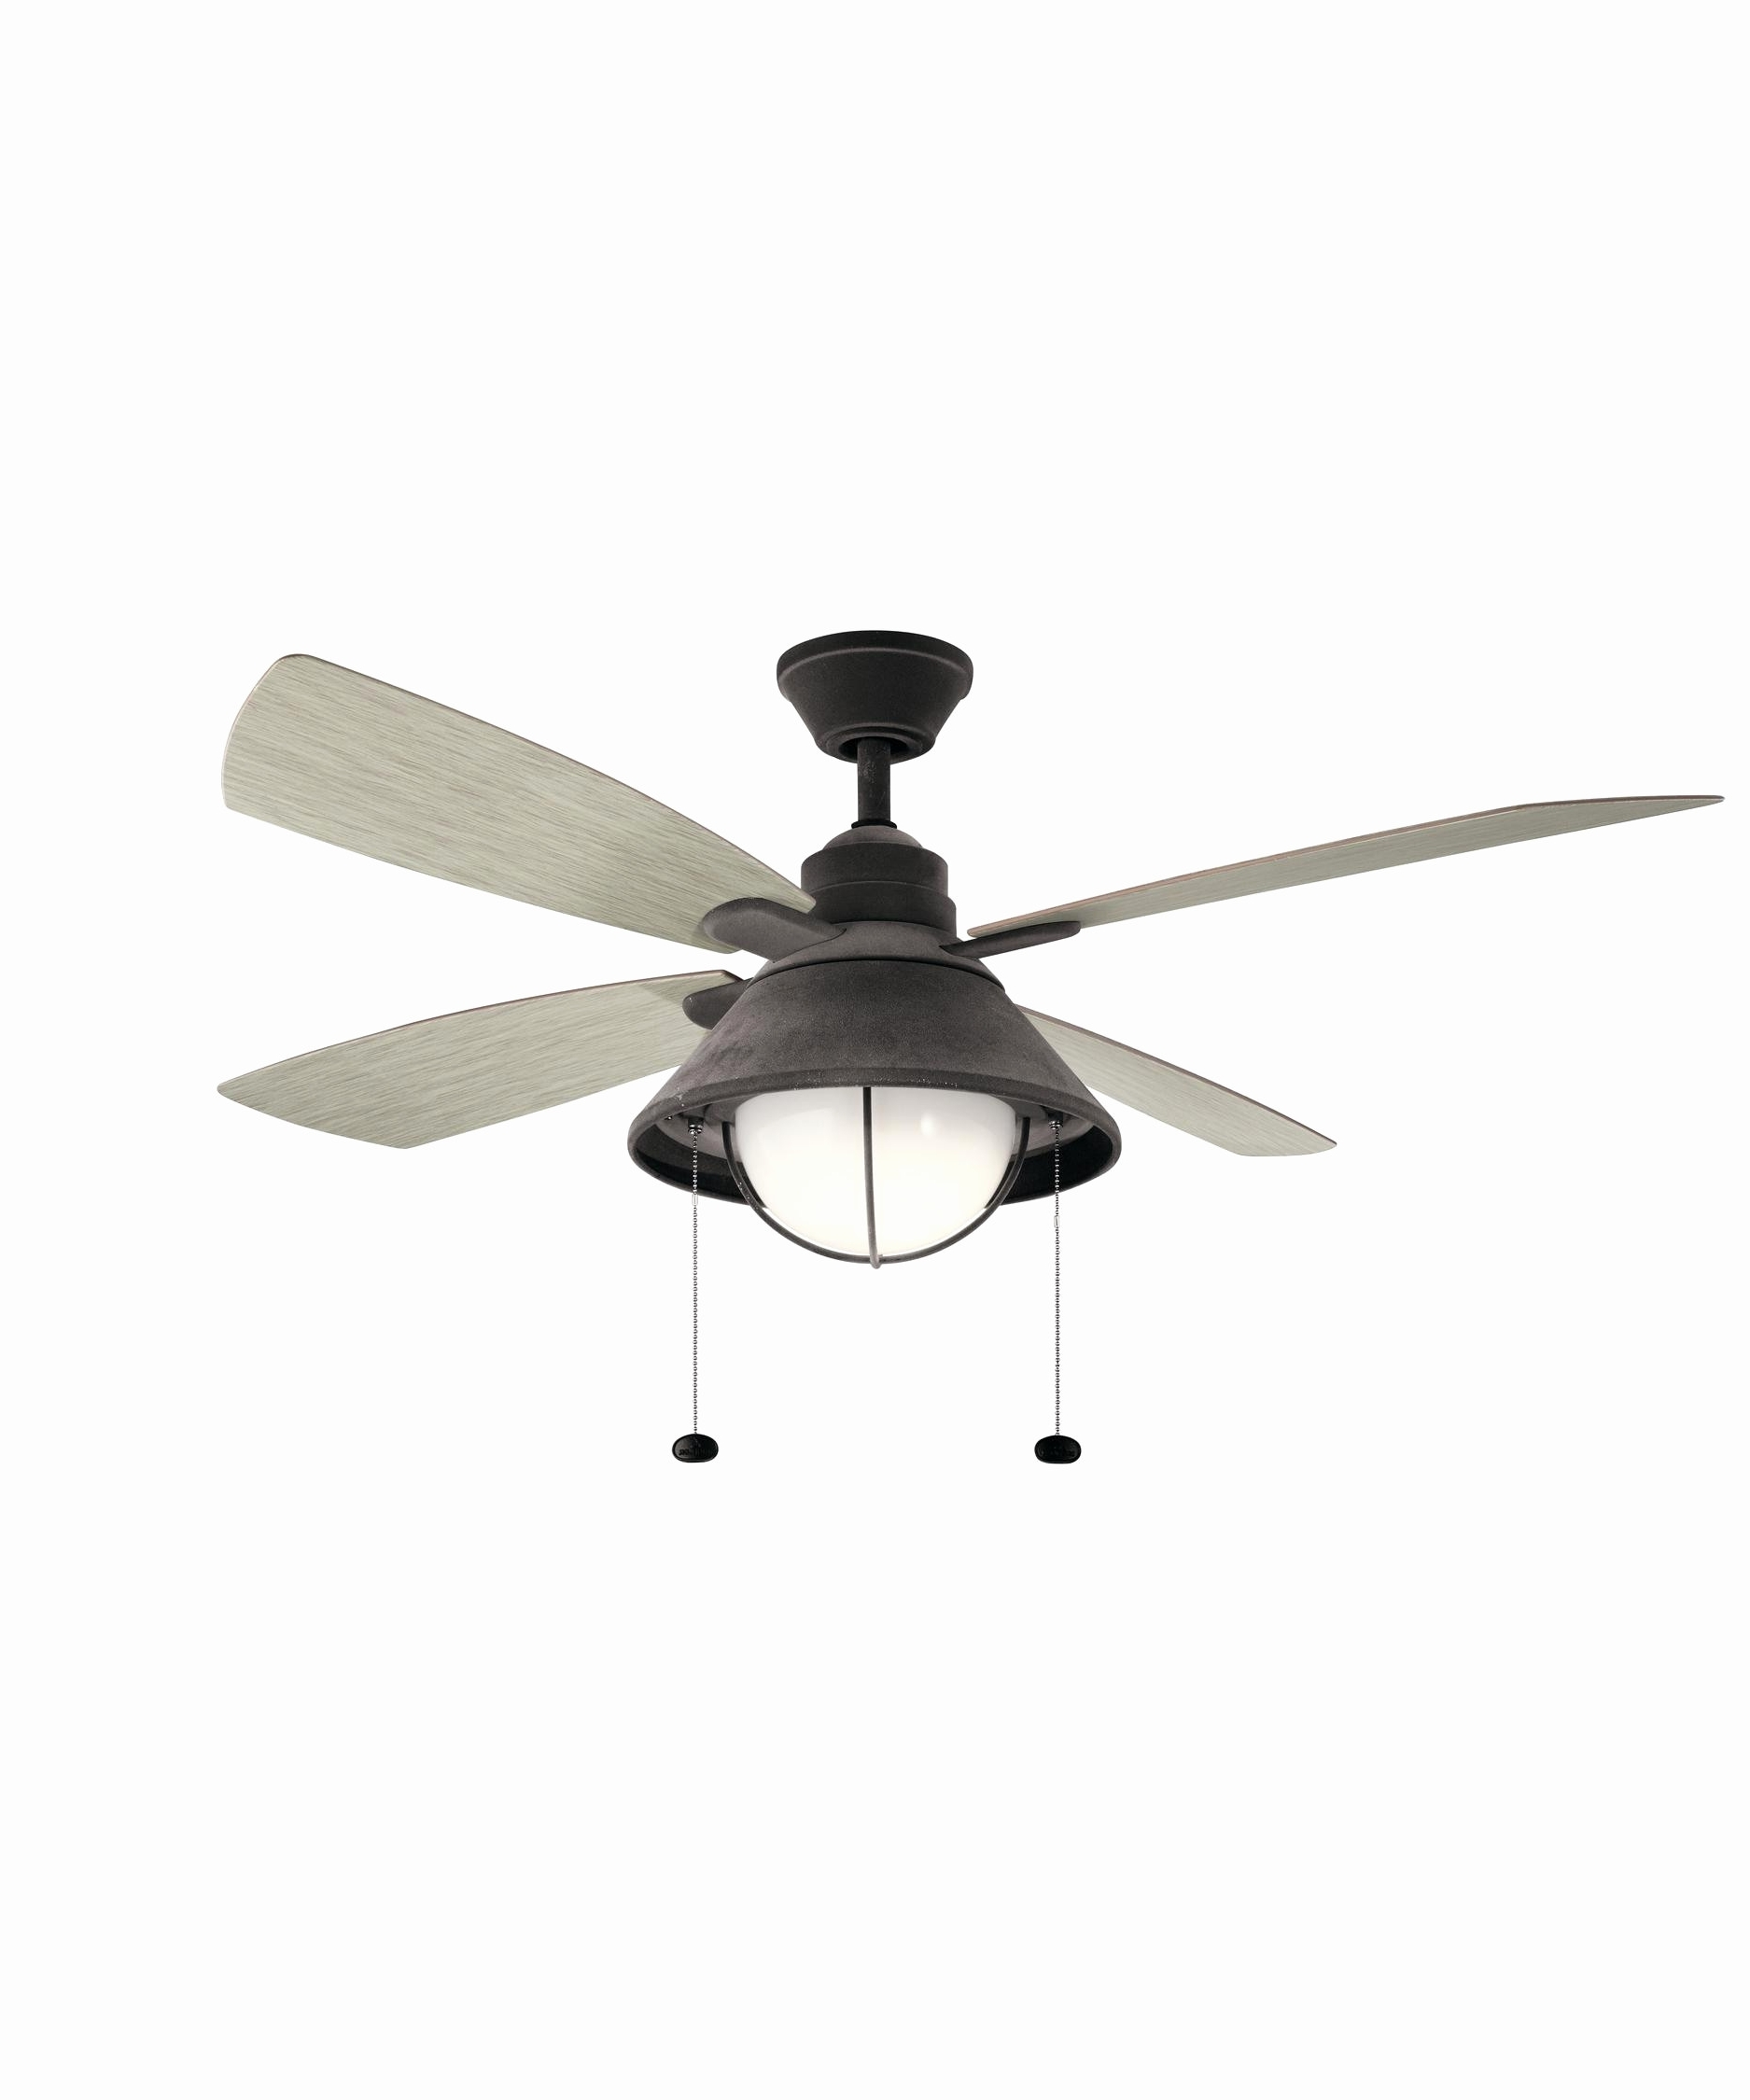 High Cfm Outdoor Ceiling Fan Inspirational Kichler Seaside 52 Inch 4 With Regard To 2019 Outdoor Ceiling Fans With High Cfm (Gallery 4 of 20)